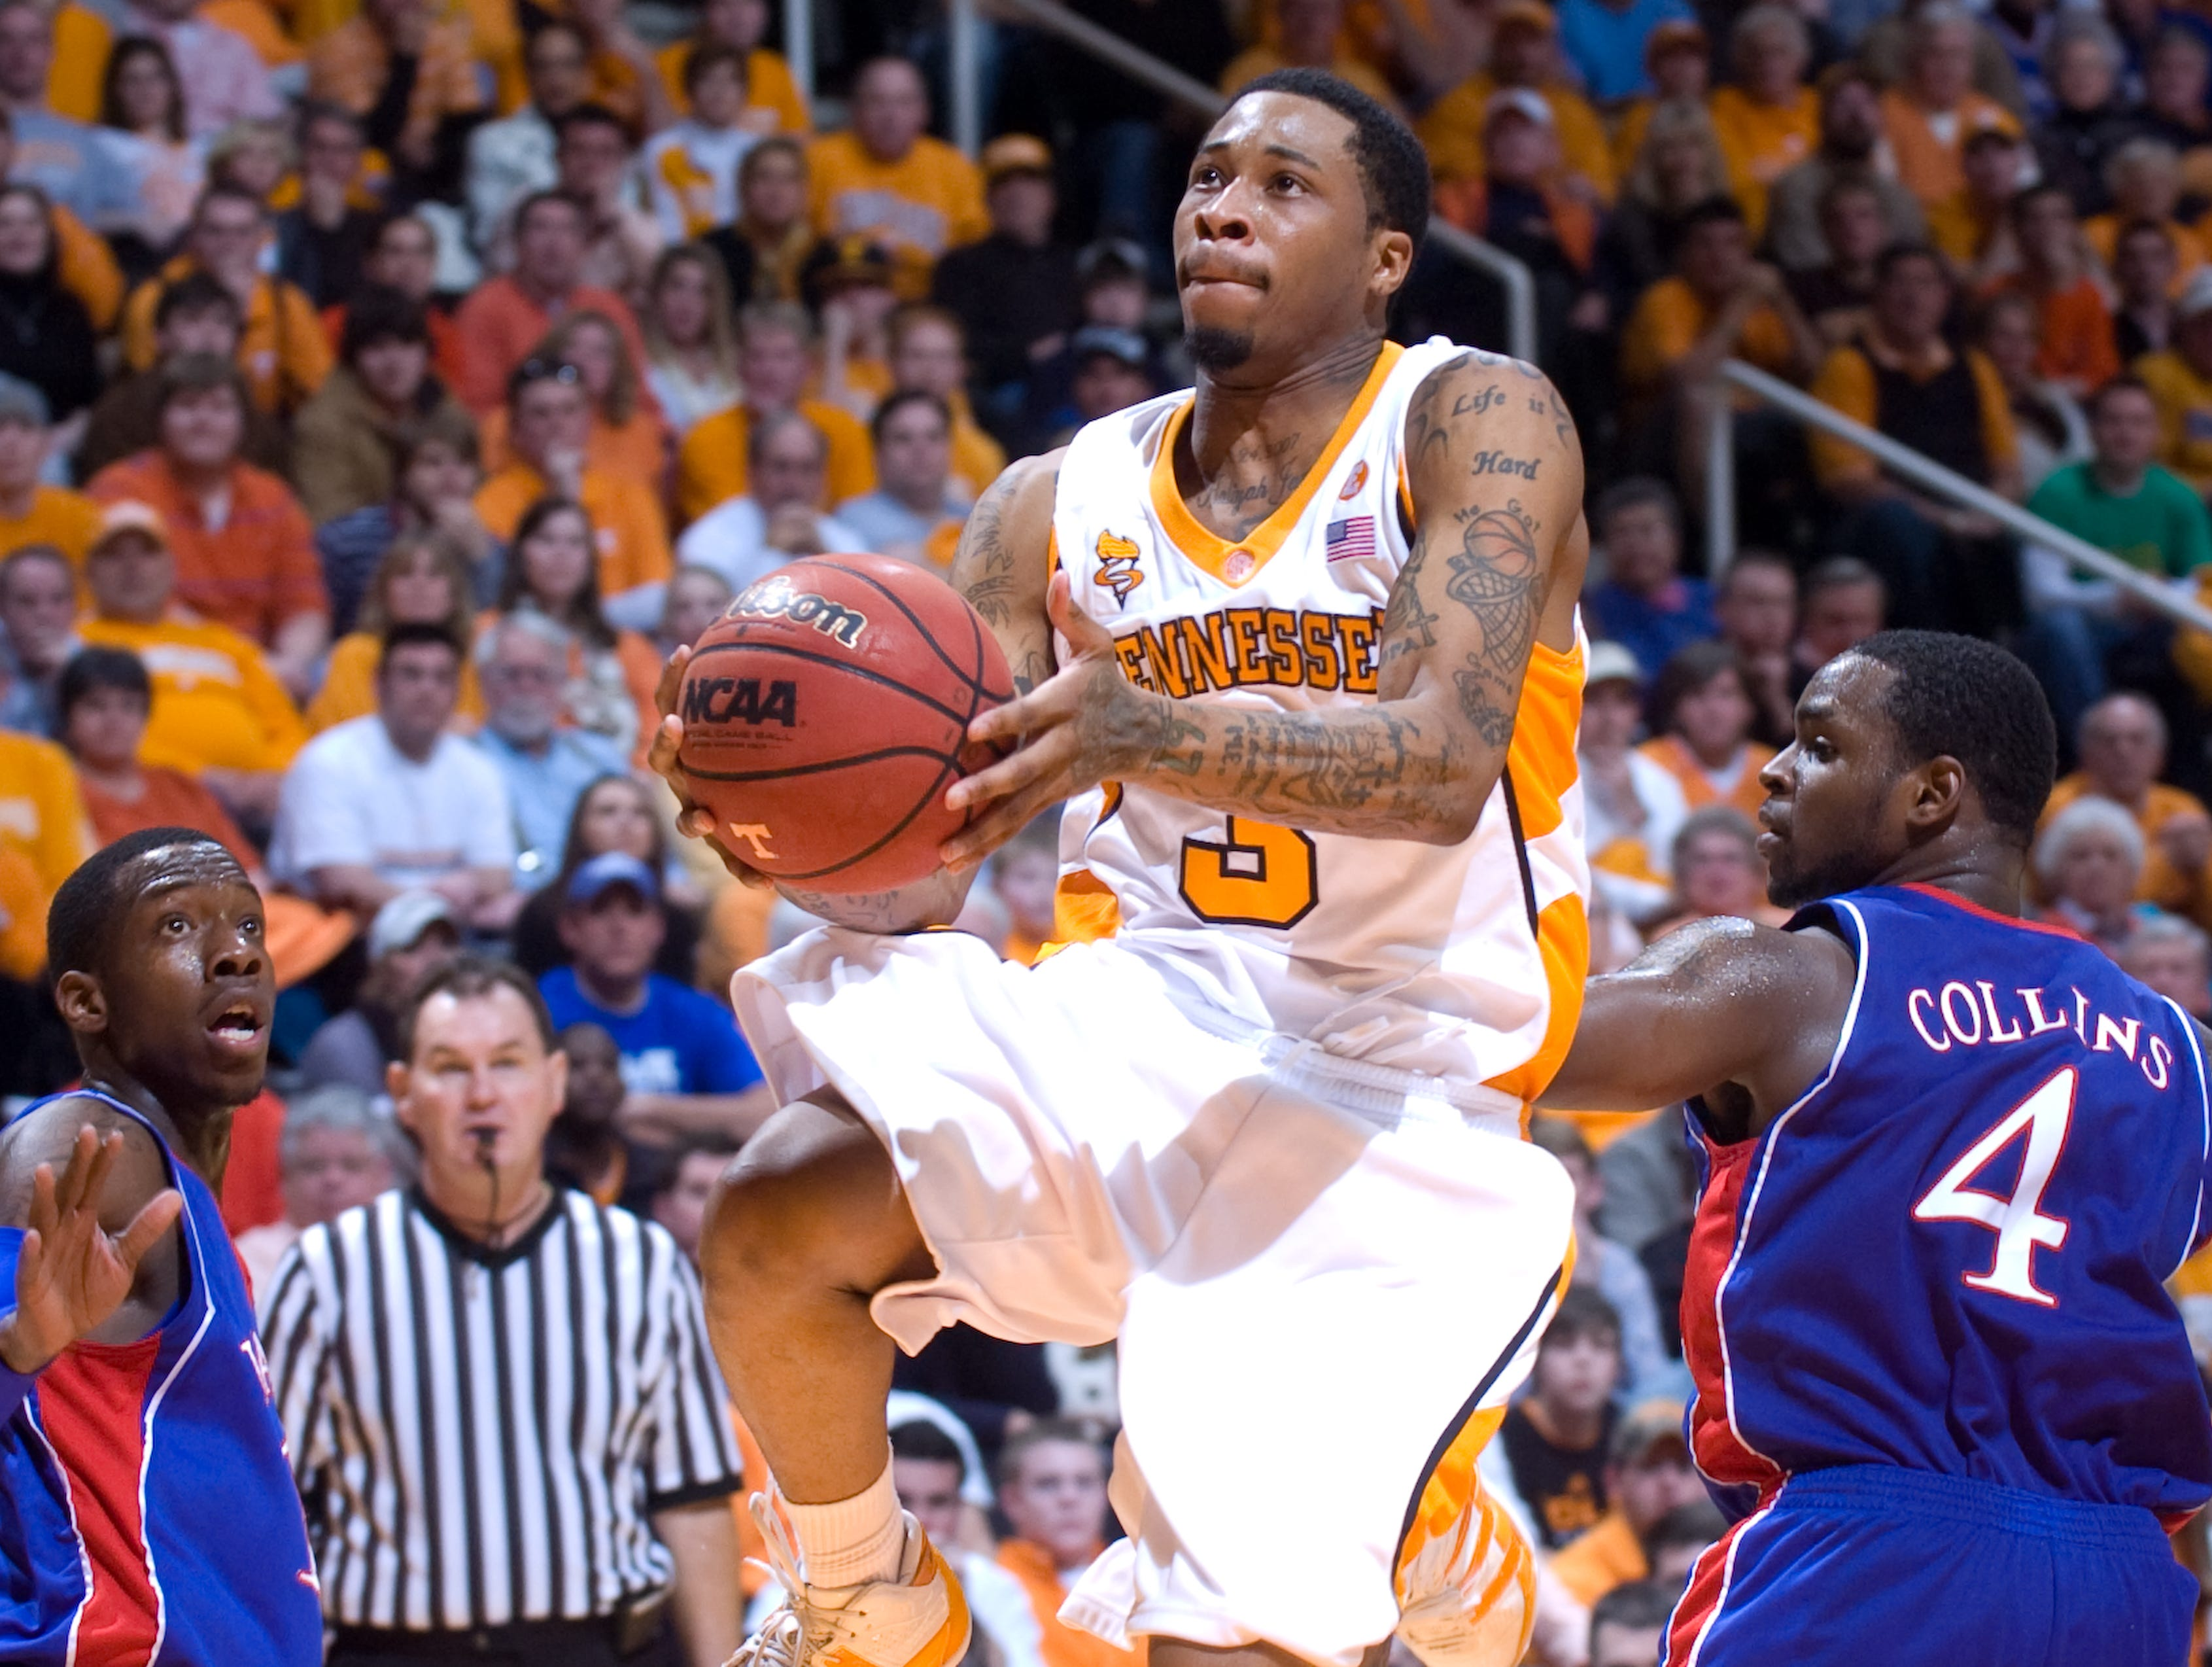 Tennessee's Bobby Maze takes to the air for the basket after getting past Kansas' Sherron Collins. Maze had 16 points, 8 assists, and 7 rebounds. Tennessee upsets number one ranked  Kansas 76-68 at Thompson-Boling Arena  Sunday, Jan 10, 2010.